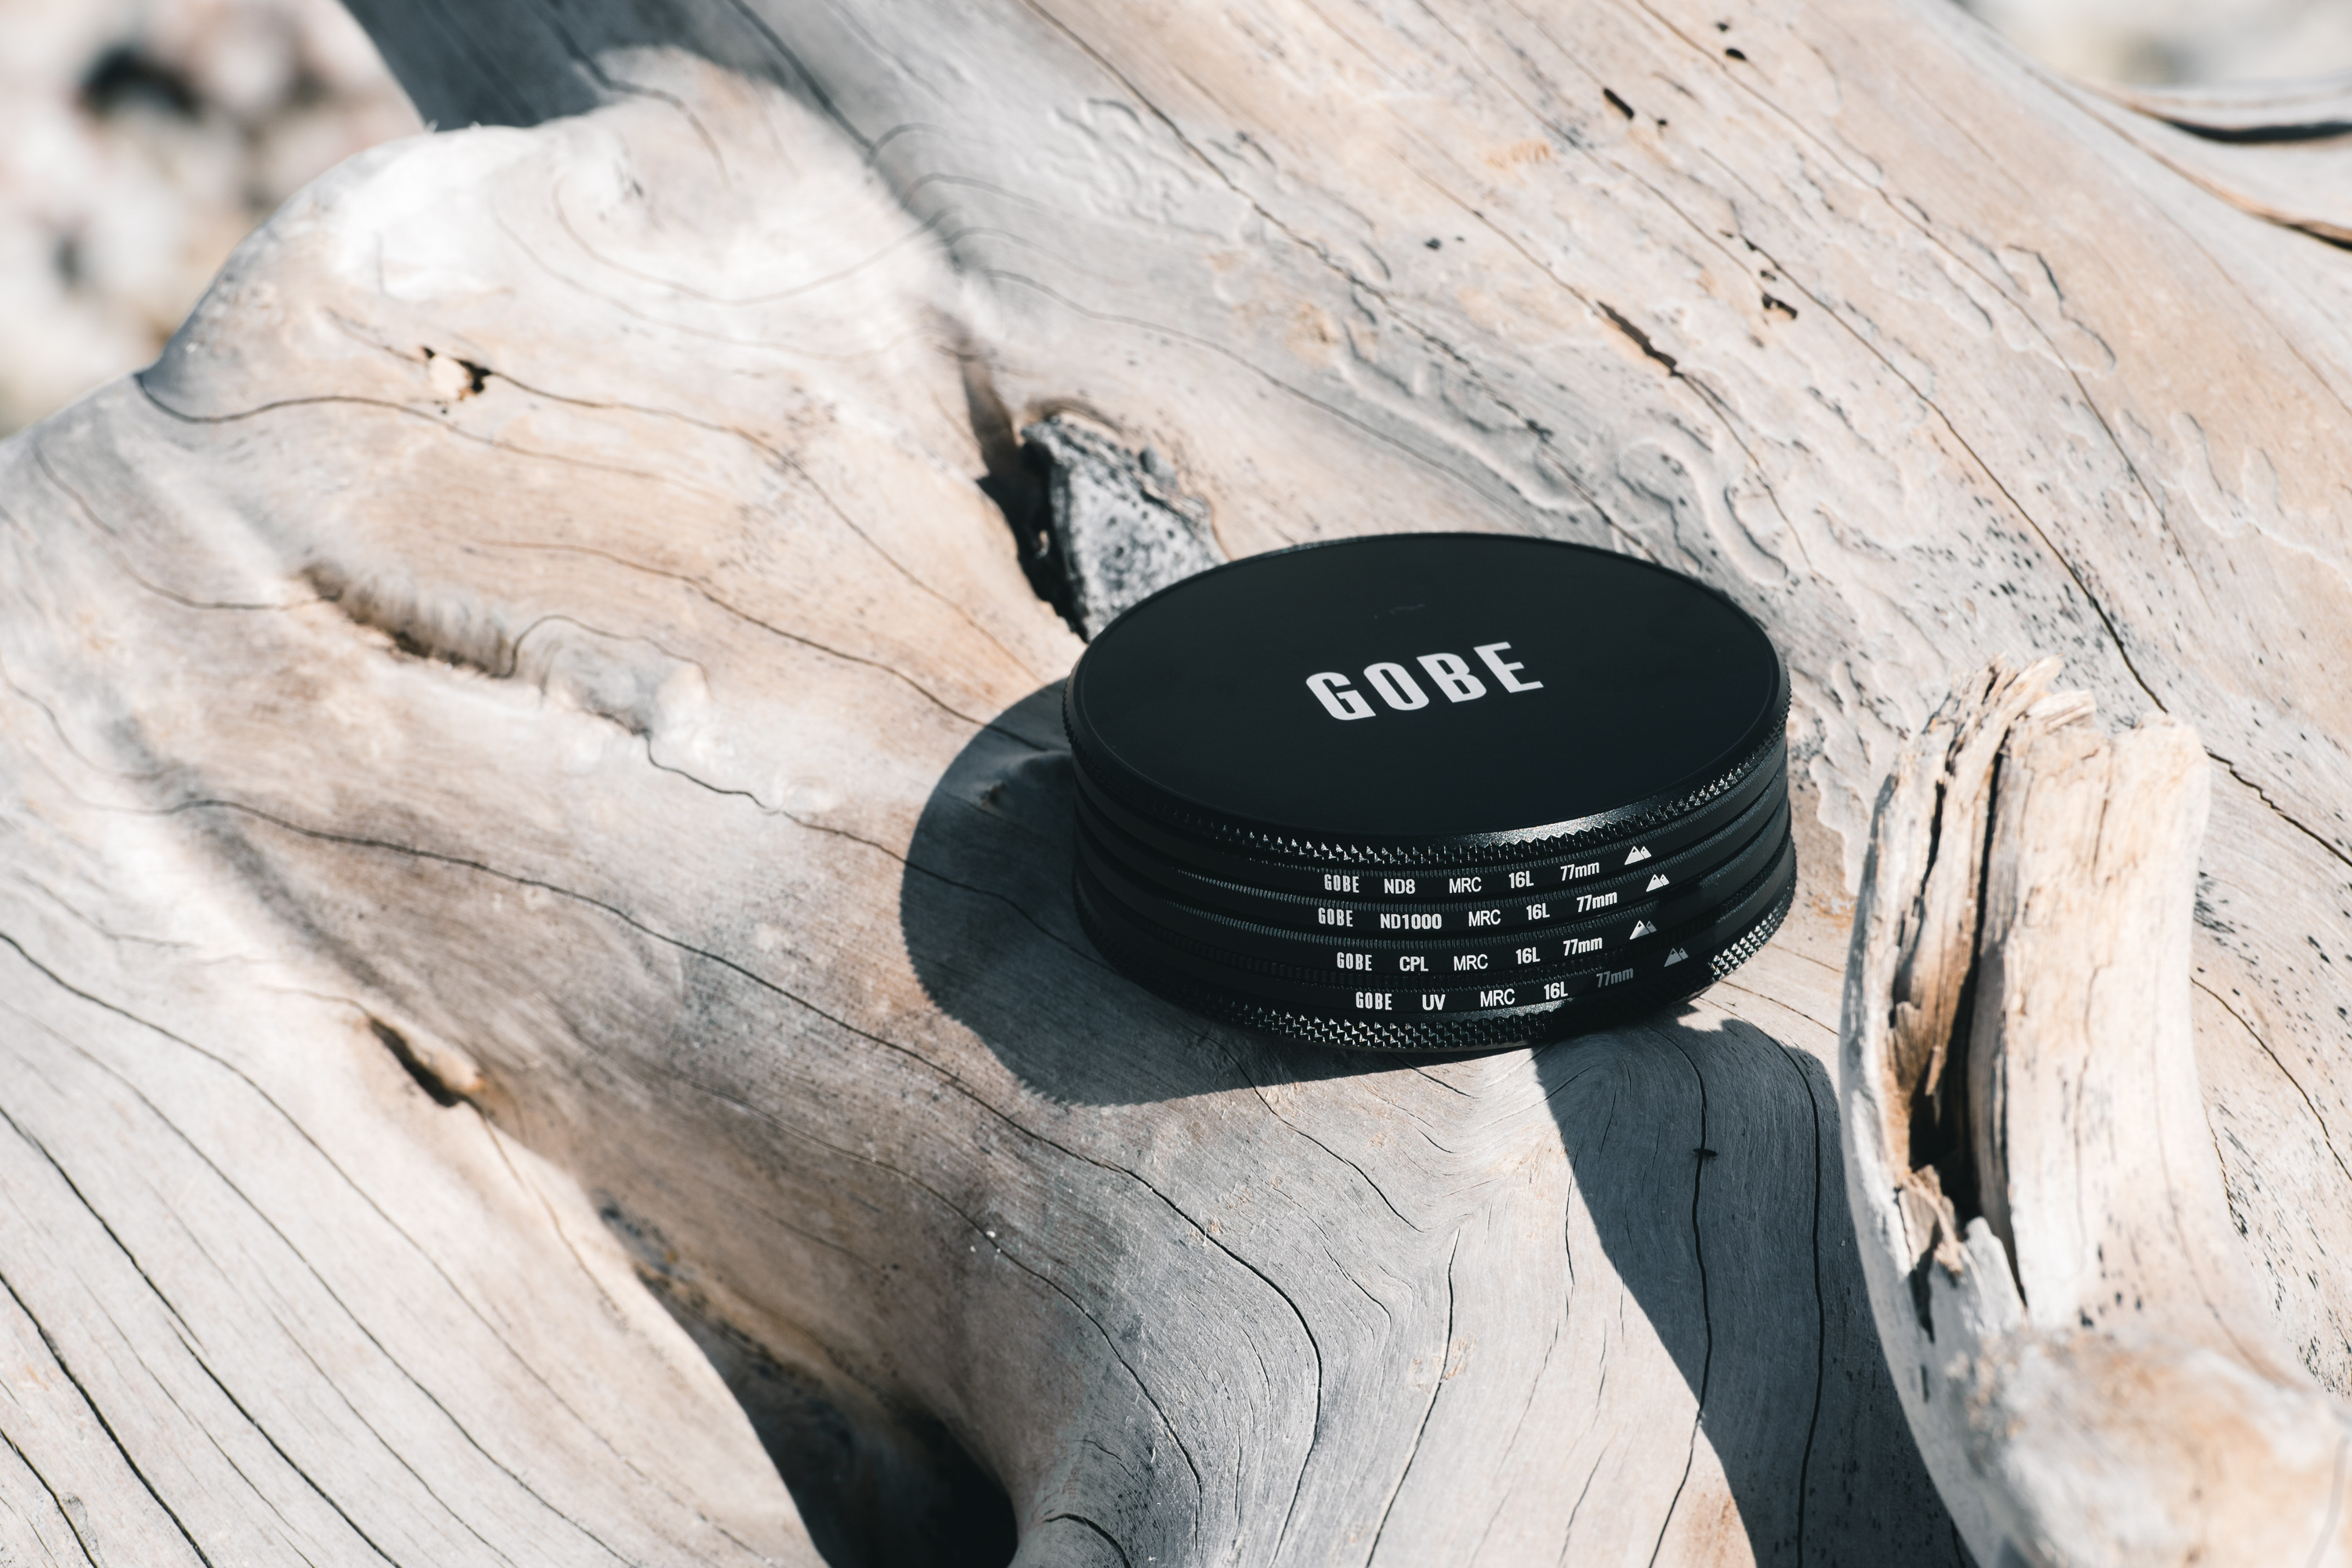 Product photography by Maxime Horlaville - MxHpics